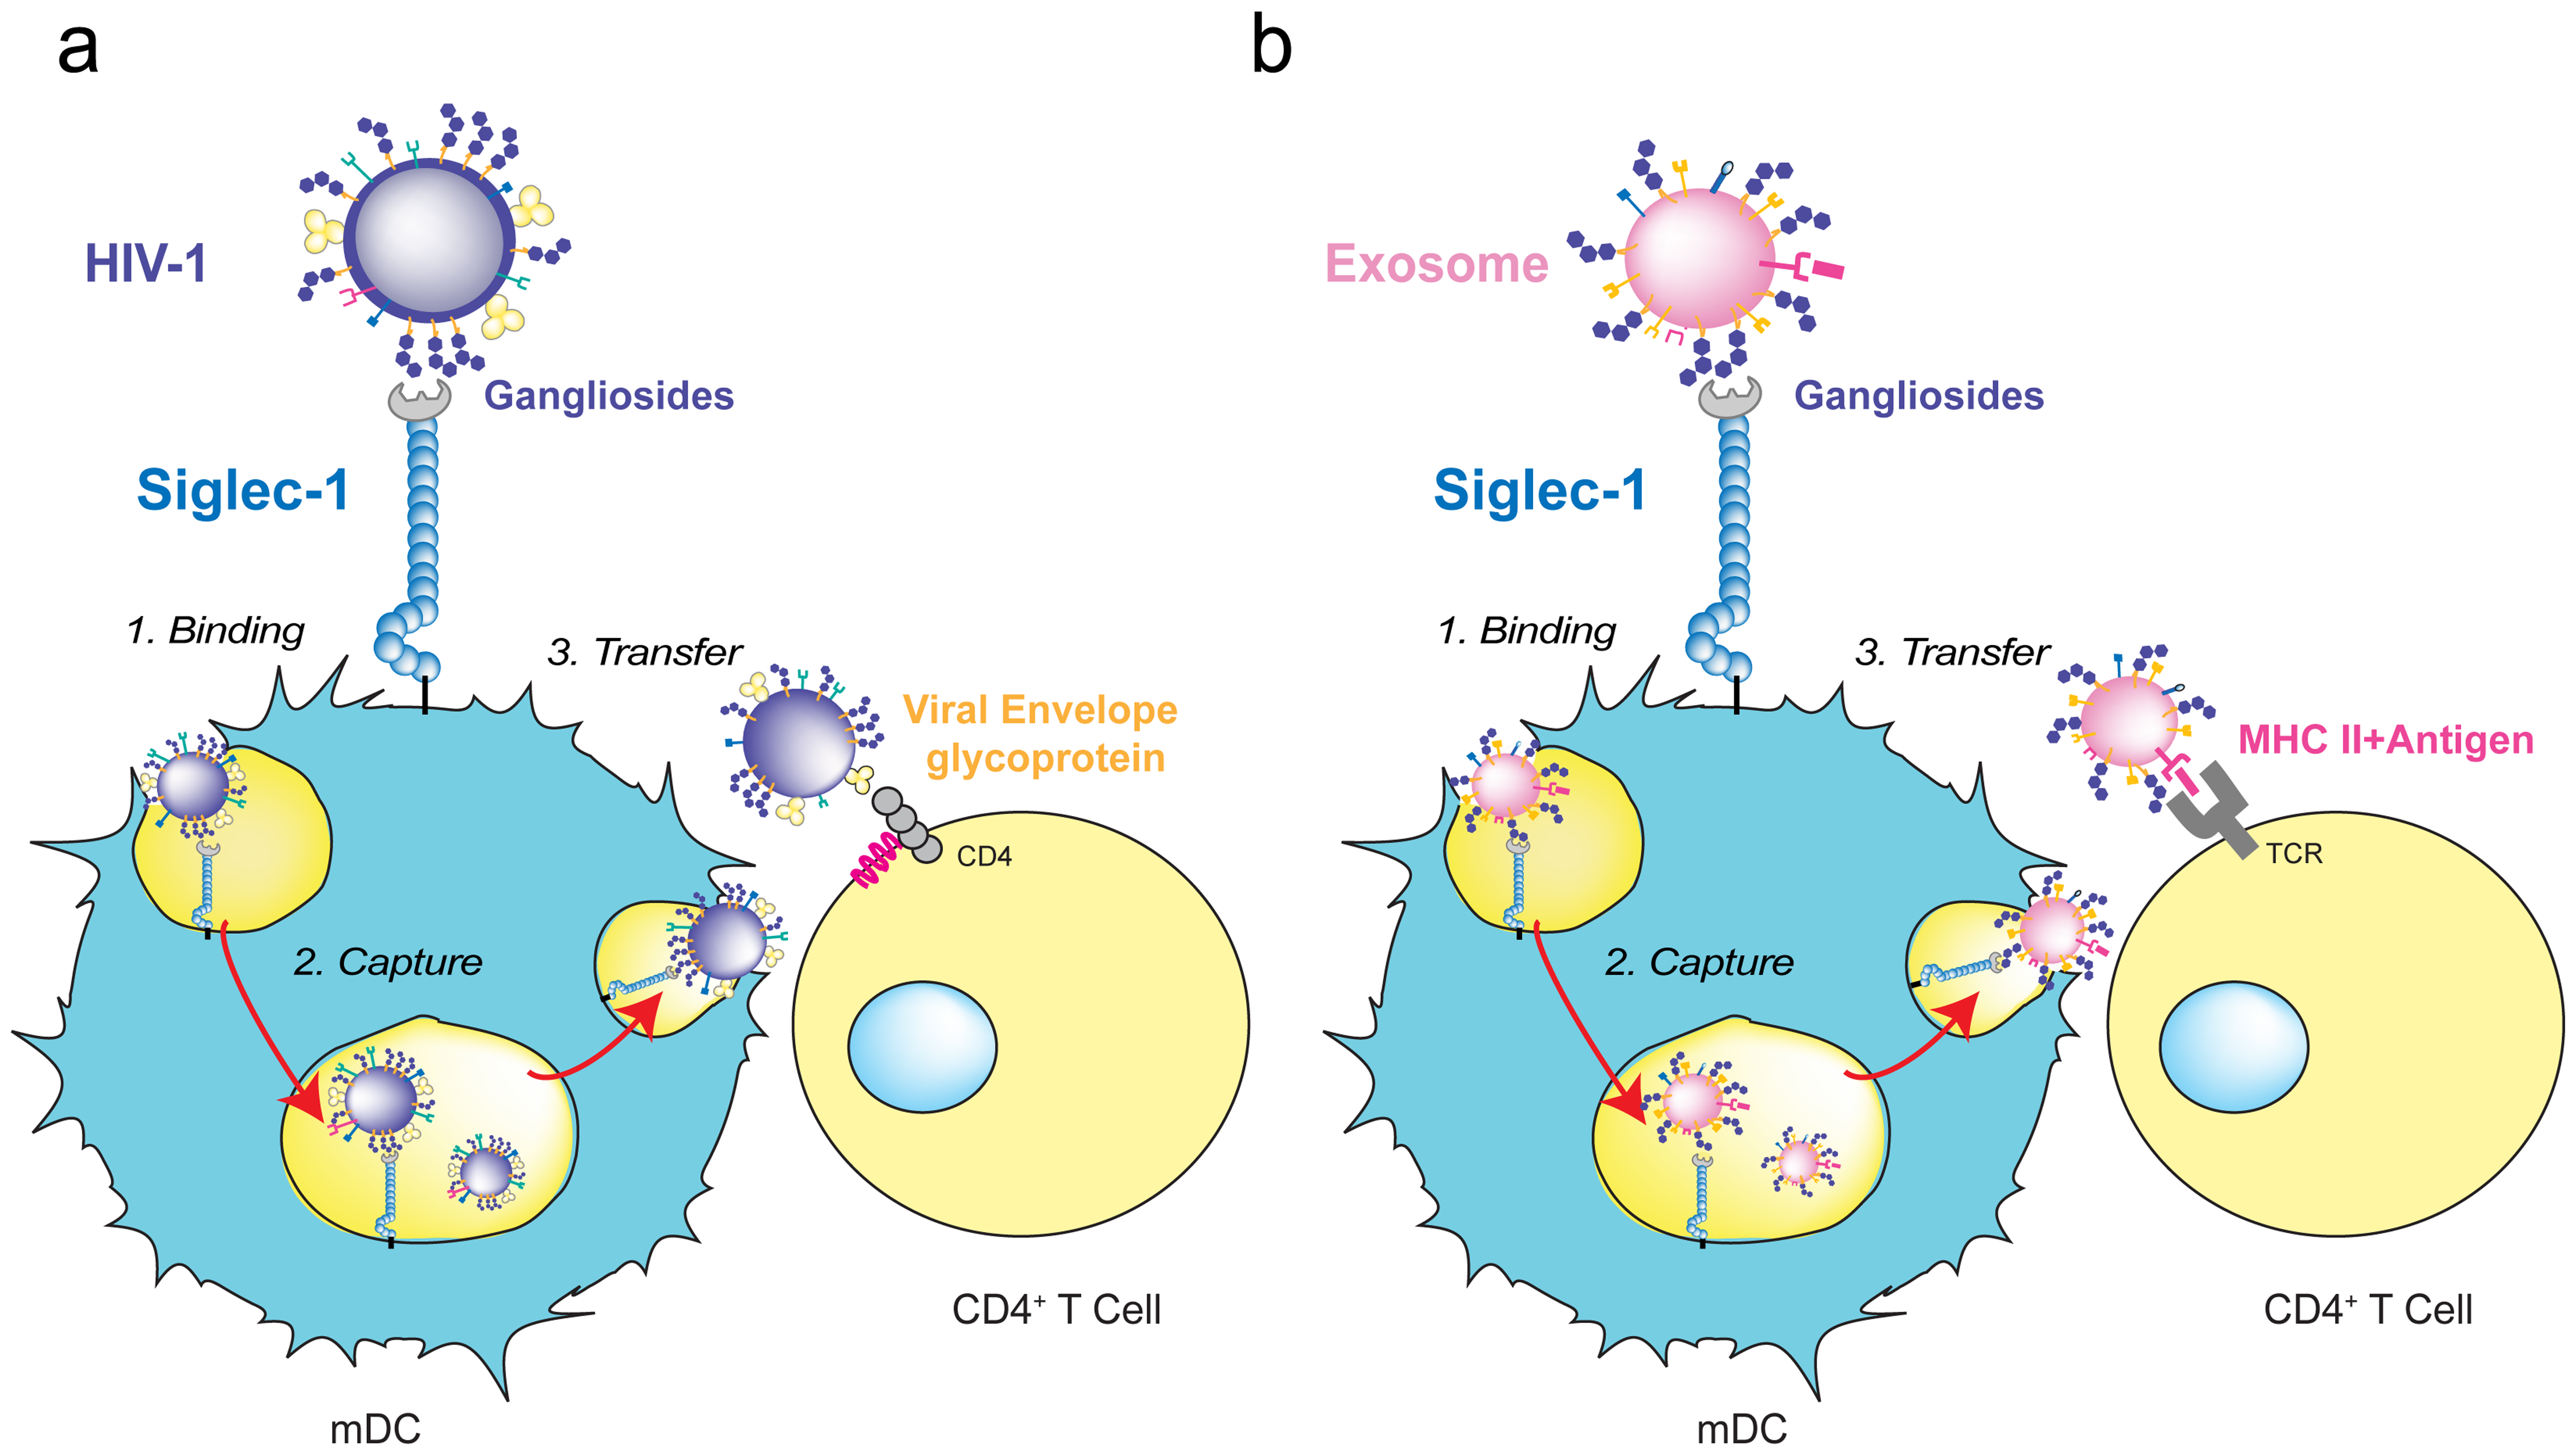 HIV-1 and exosome targeting to Siglec-1.